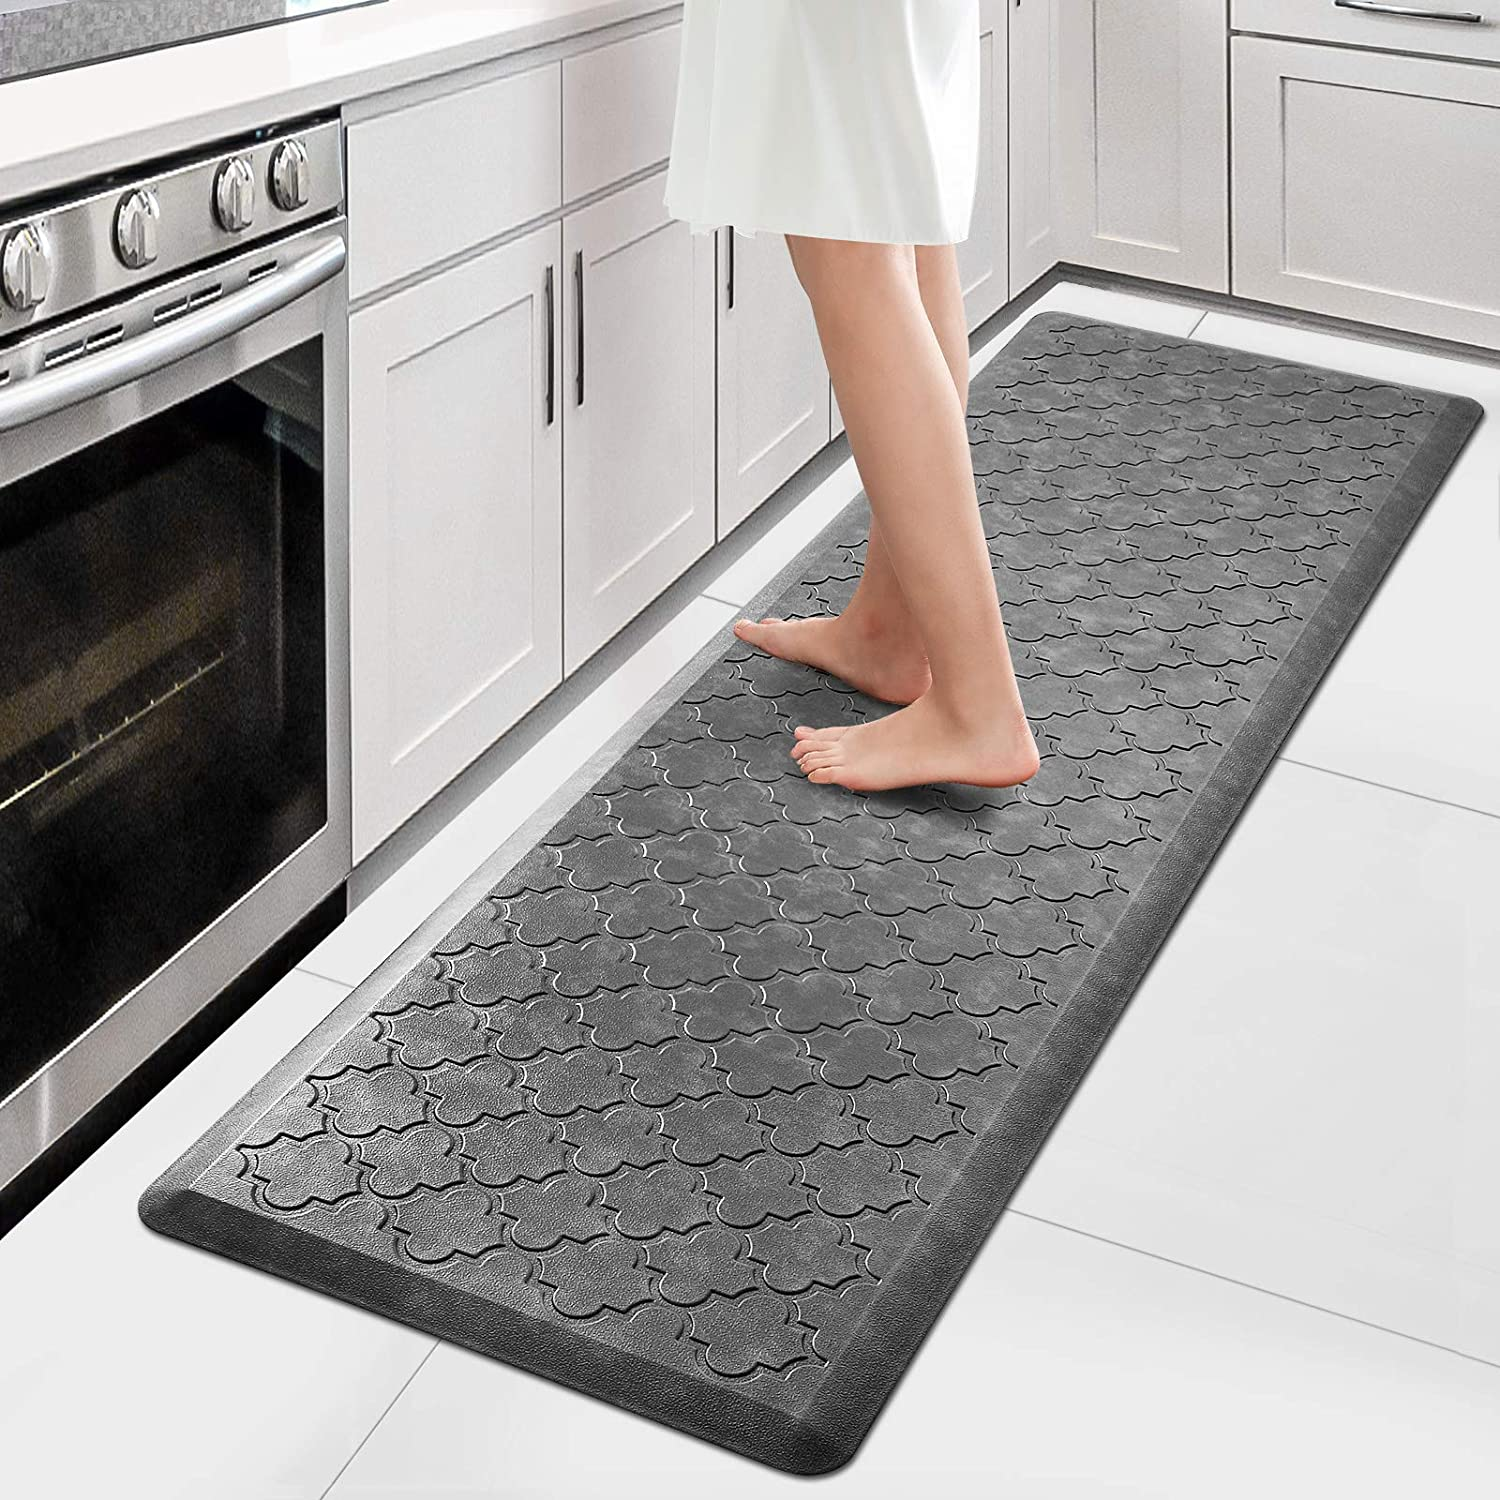 Amazon Com Wiselife Kitchen Mat Cushioned Anti Fatigue Floor Mat 17 3 X59 Thick Non Slip Waterproof Kitchen Rugs And Mats Heavy Duty Foam Standing Mat For Kitchen Floor Home Office Desk Sink Laundry Grey Kitchen Dining